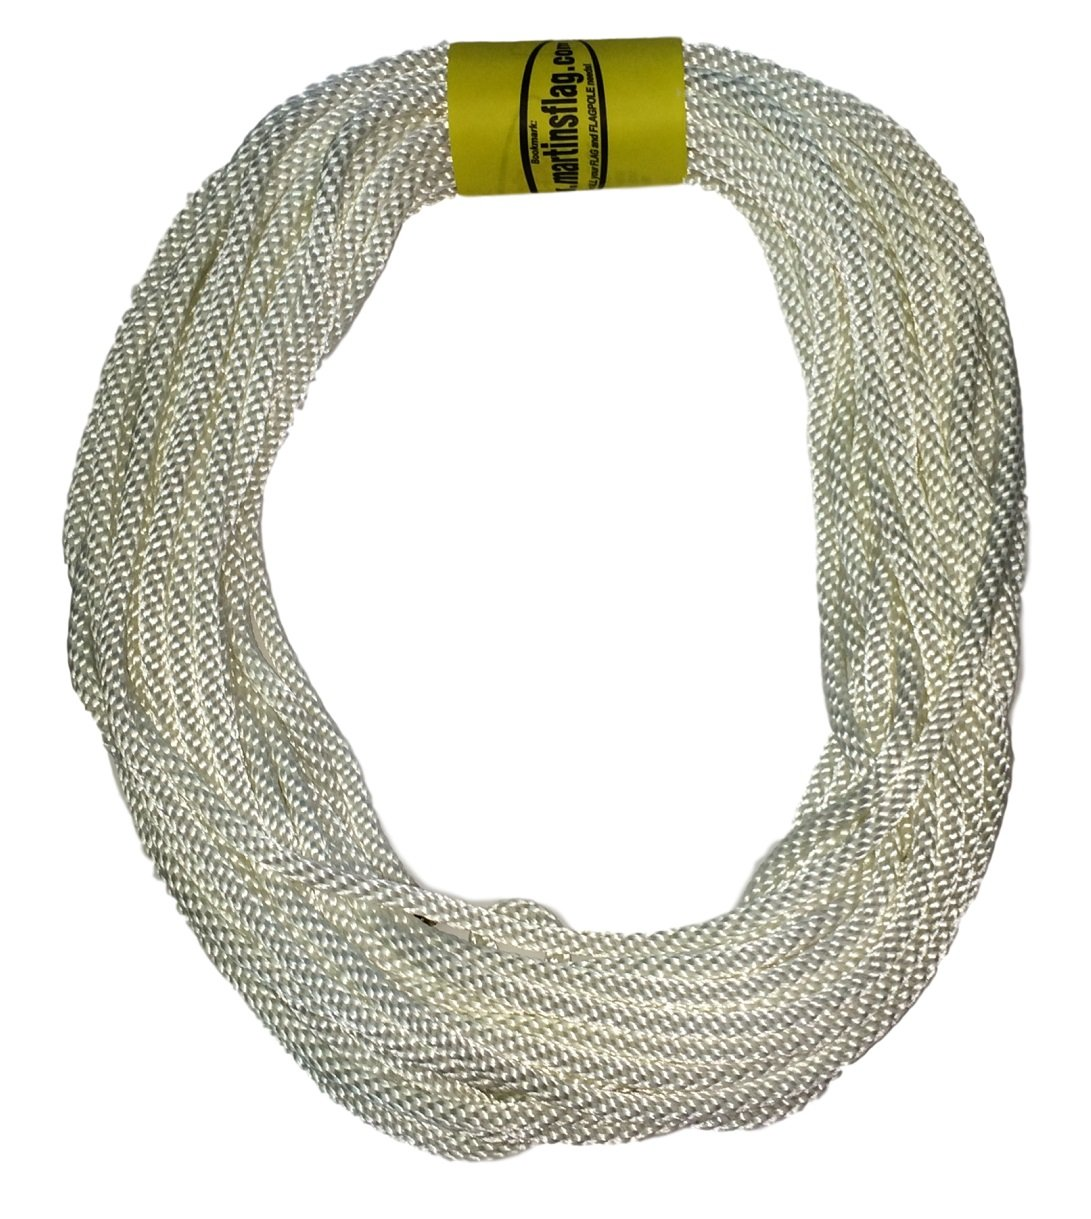 Flagpole Rope 5/16'' in Various Lengths, Made in the USA, Designed for Flagpoles, Highest Quality Available (50 Feet)